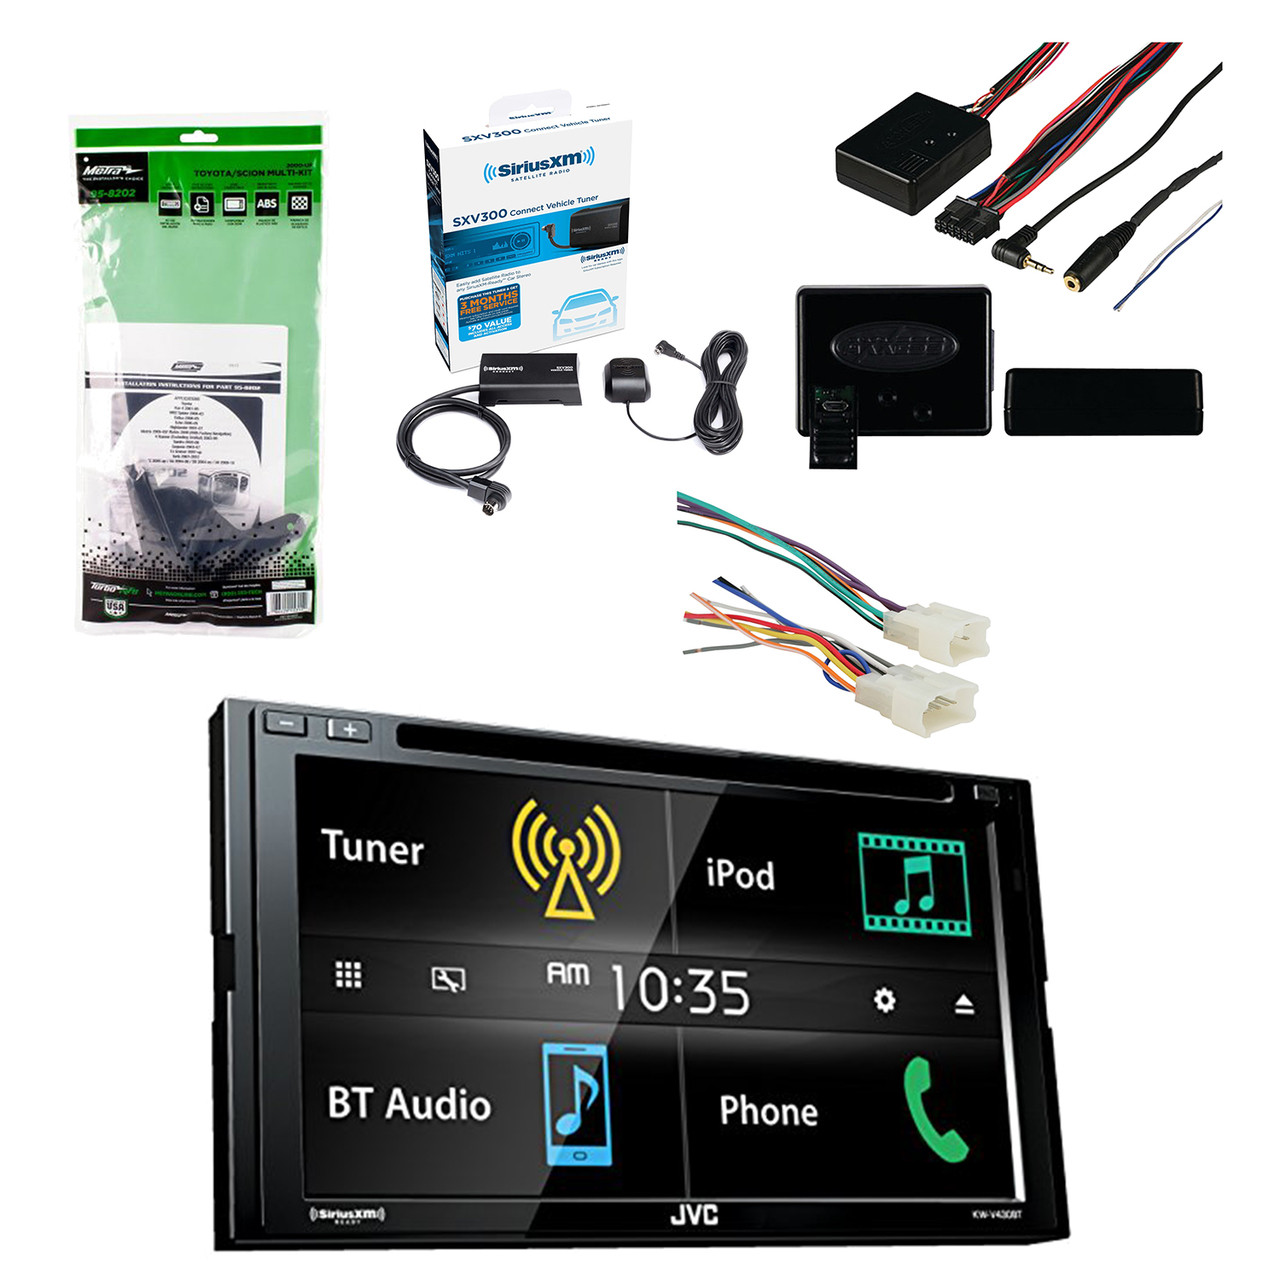 small resolution of jvc 6 8 inch lcd touchscreen 2 din bluetooth car stereo receiver w siriusxm satellite radio vehicle tuner kit metra multi dash kit radio wiring harness